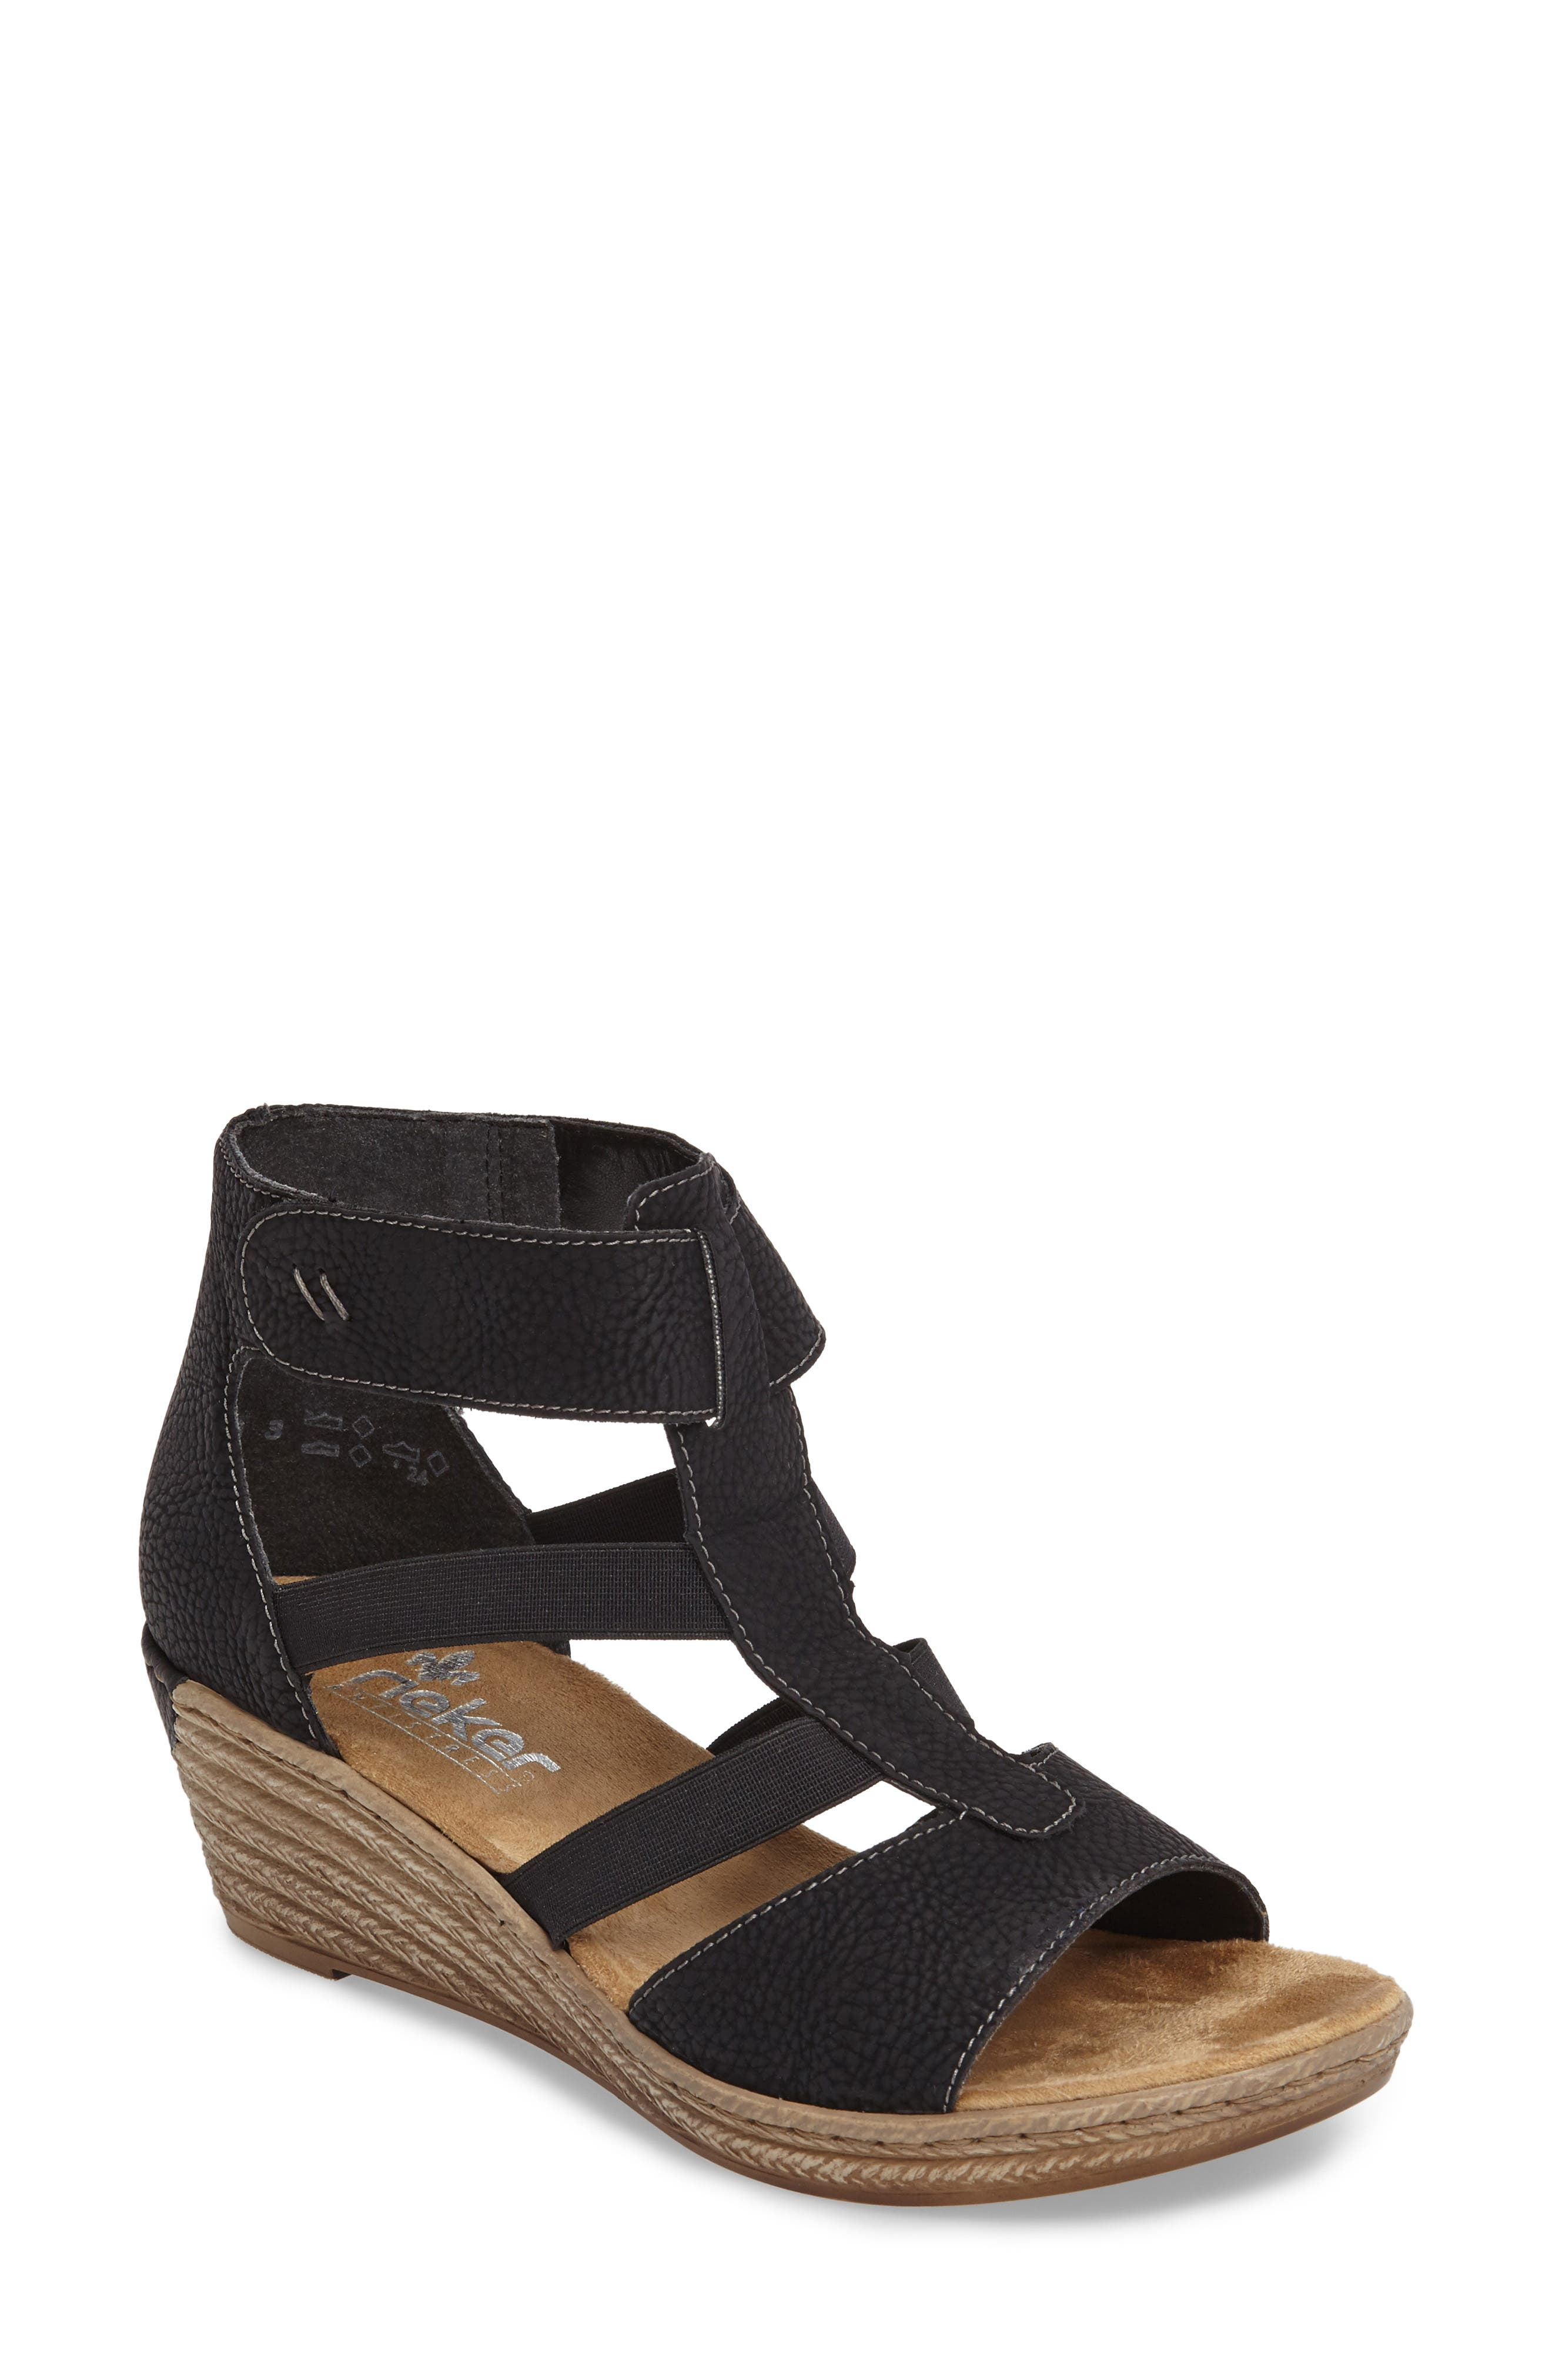 Main Image - Rieker Antistress Fanni 39 Wedge Sandal (Women)